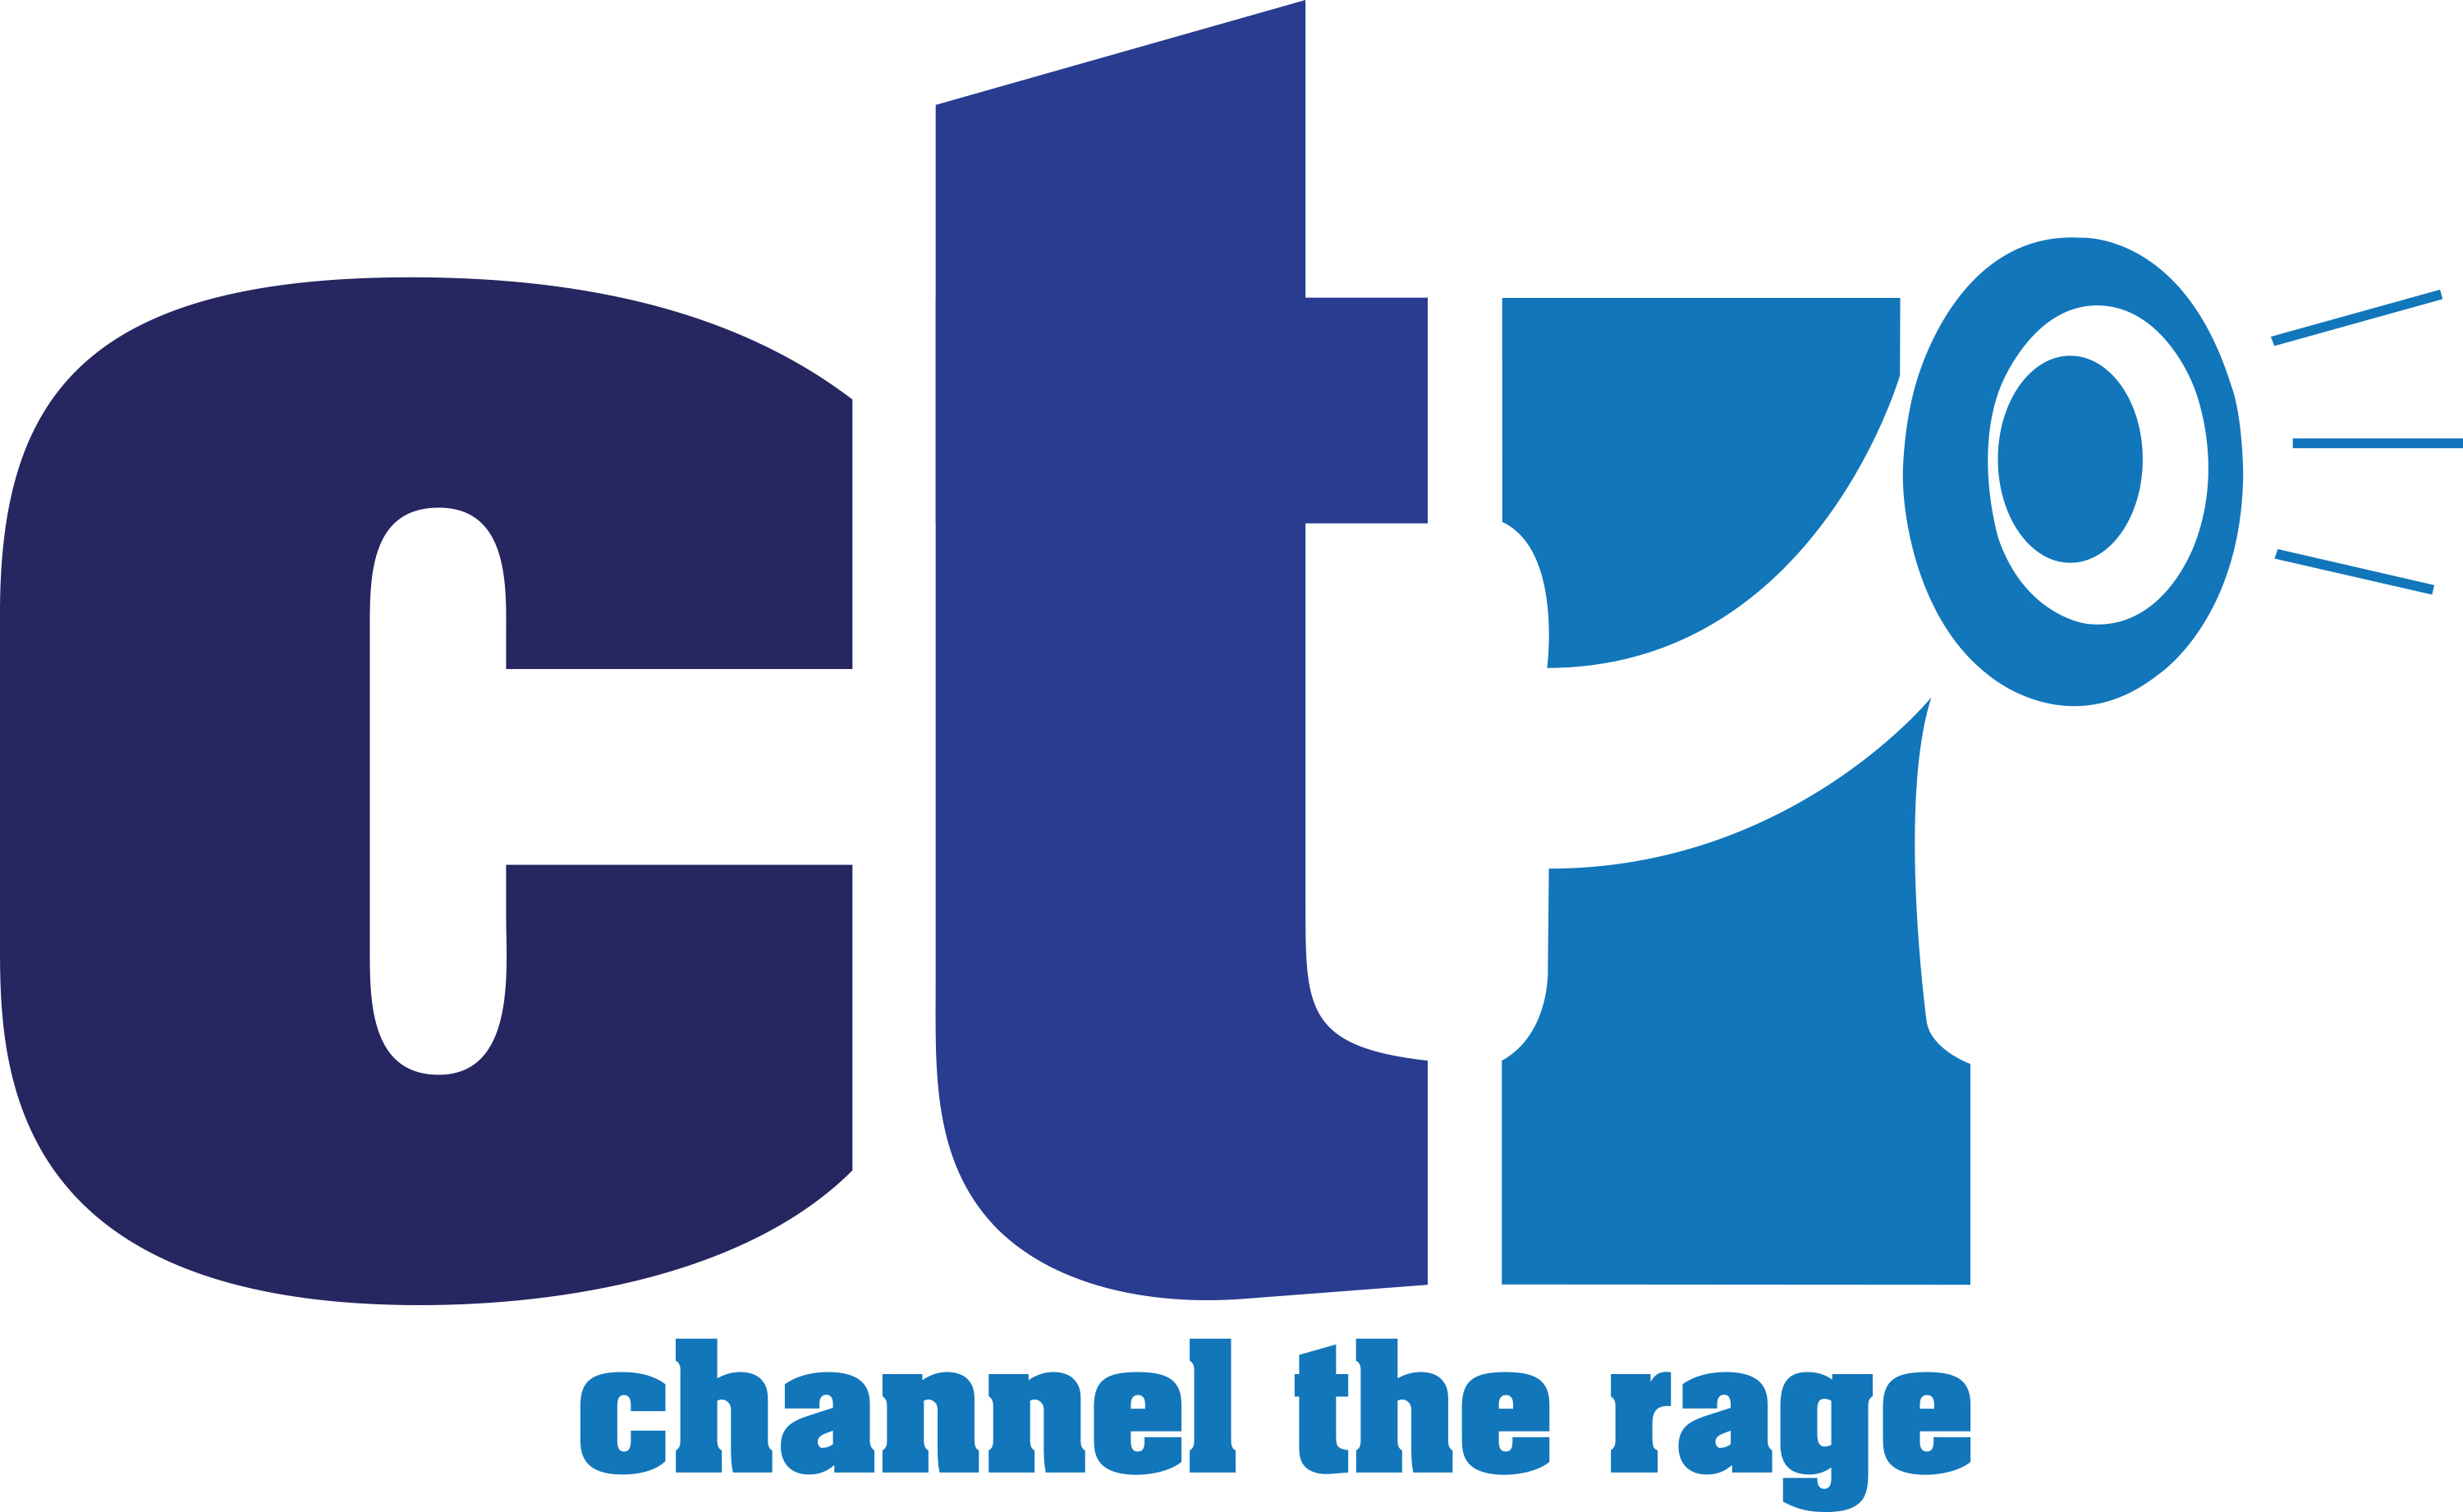 Episode 118: The Story of a Uyghur Hero show art